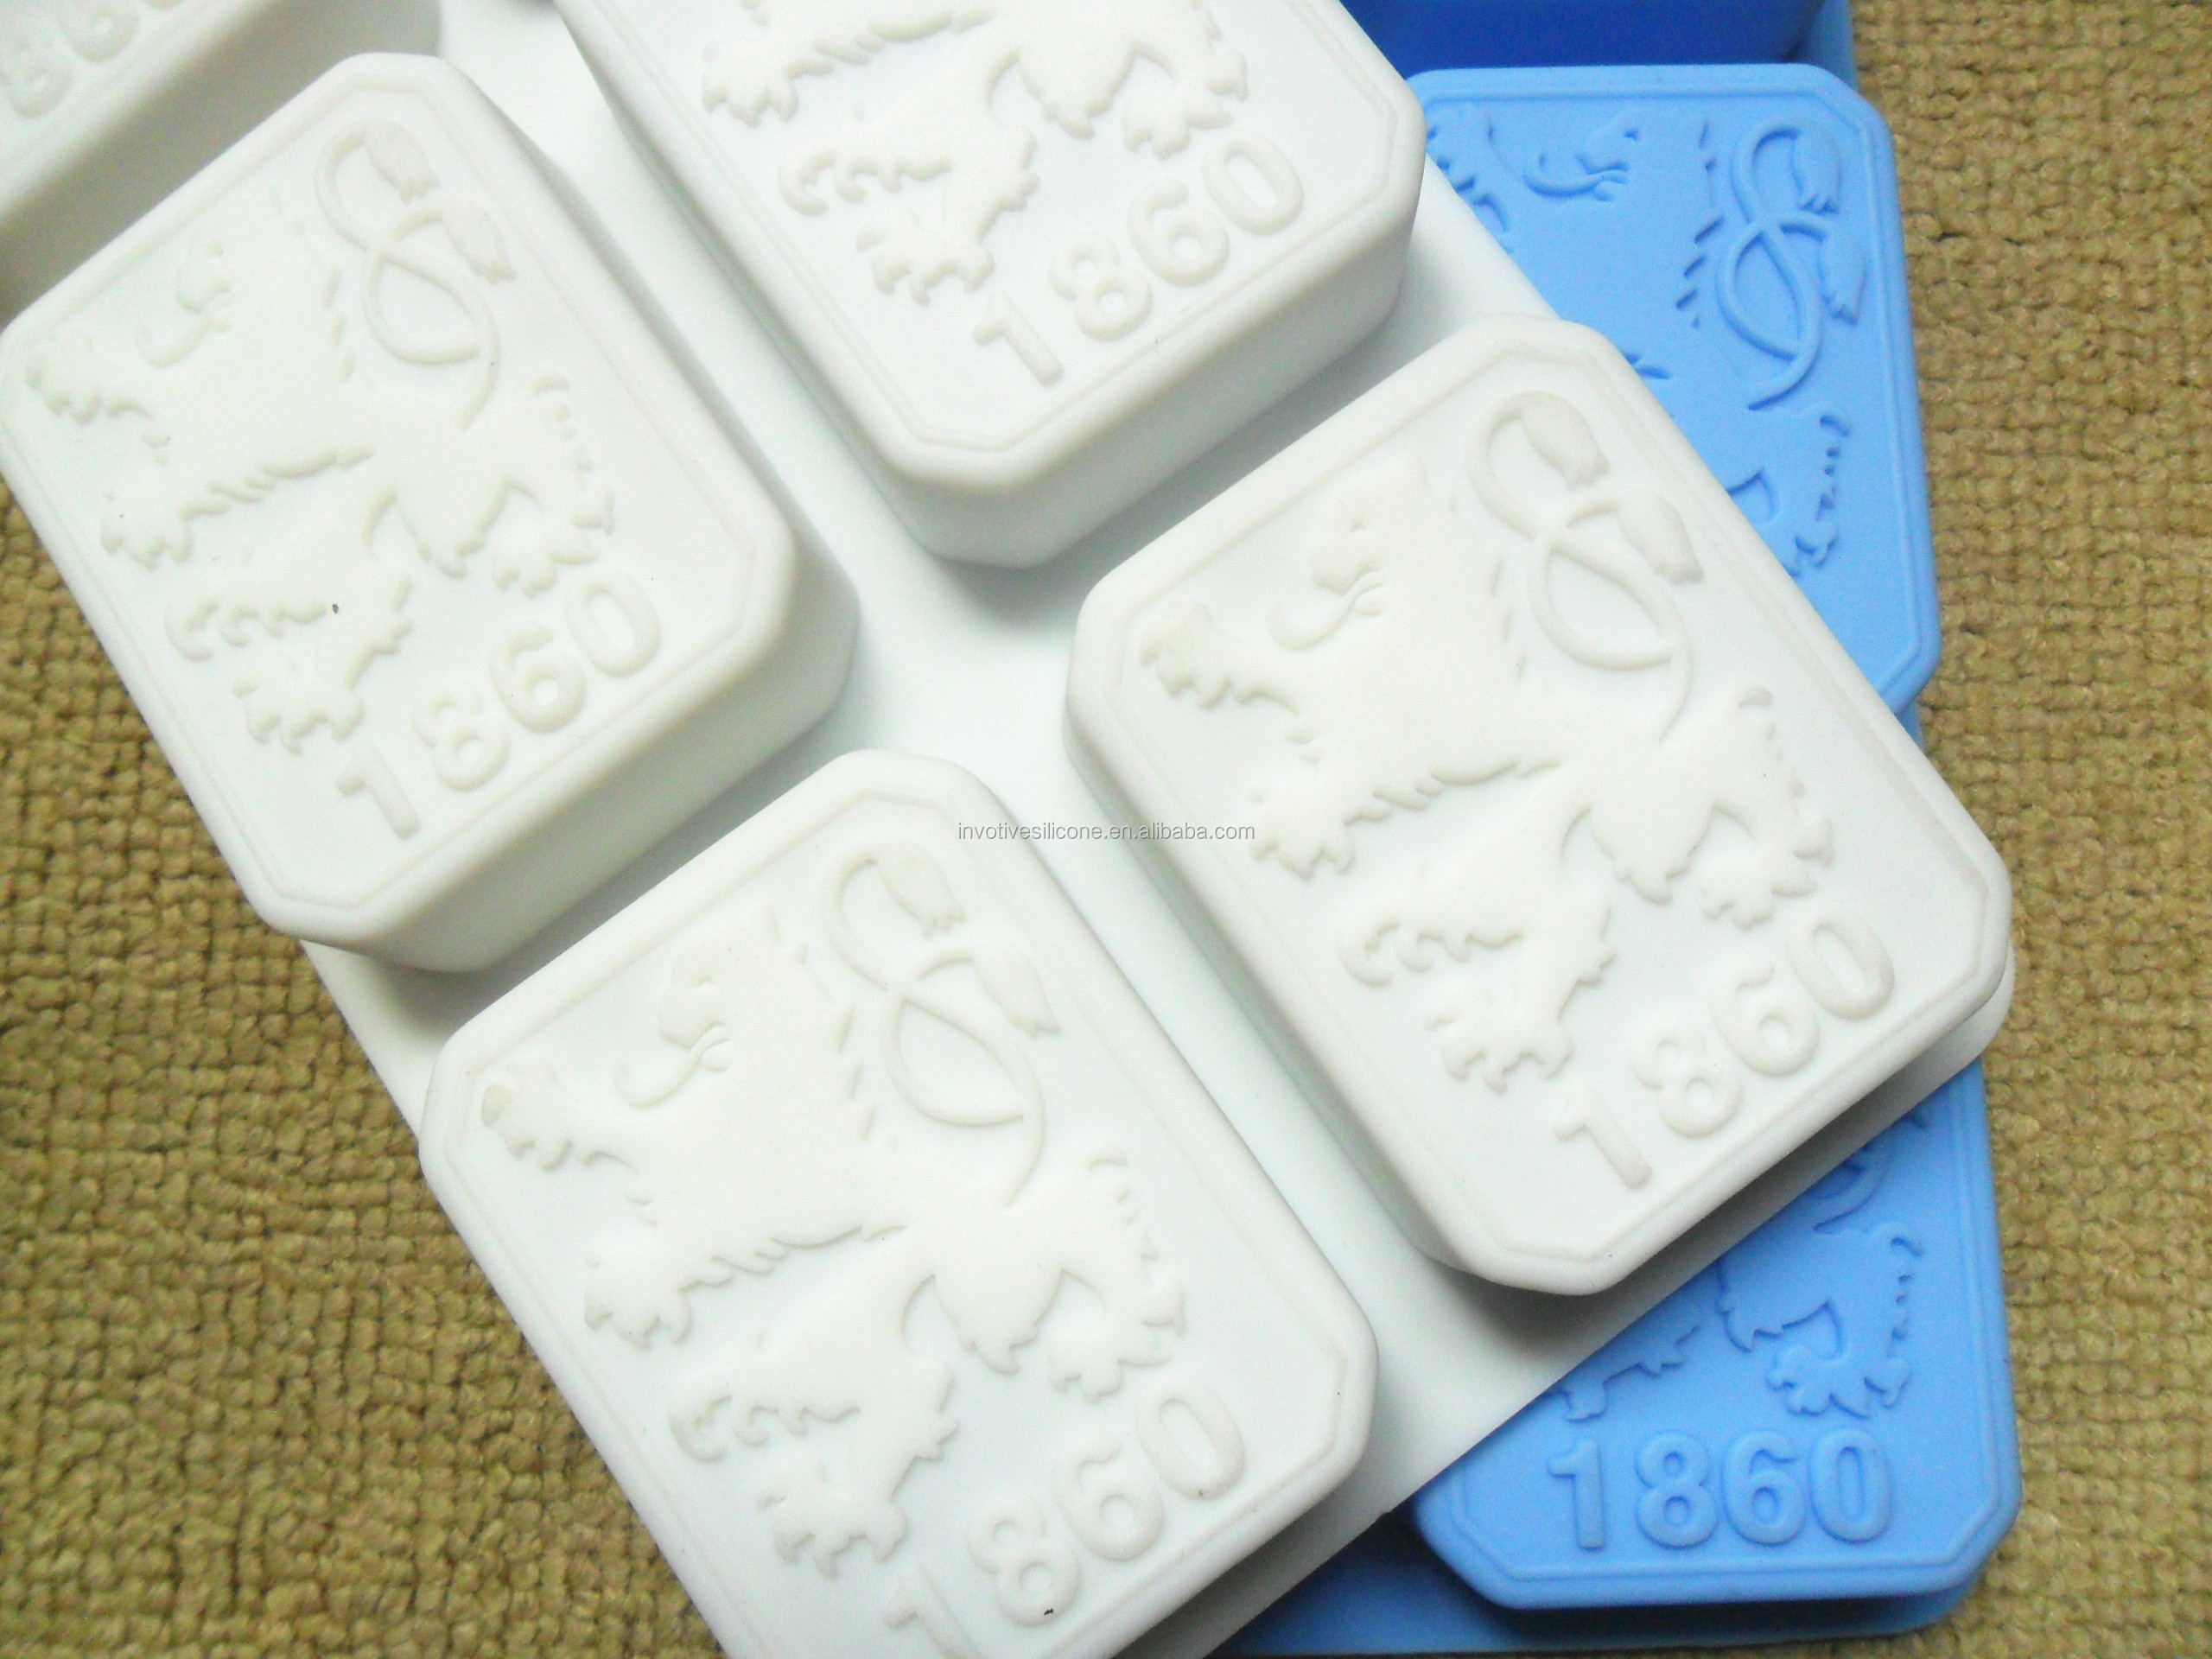 Invotive Guangdong silicone products for sale for global market-5